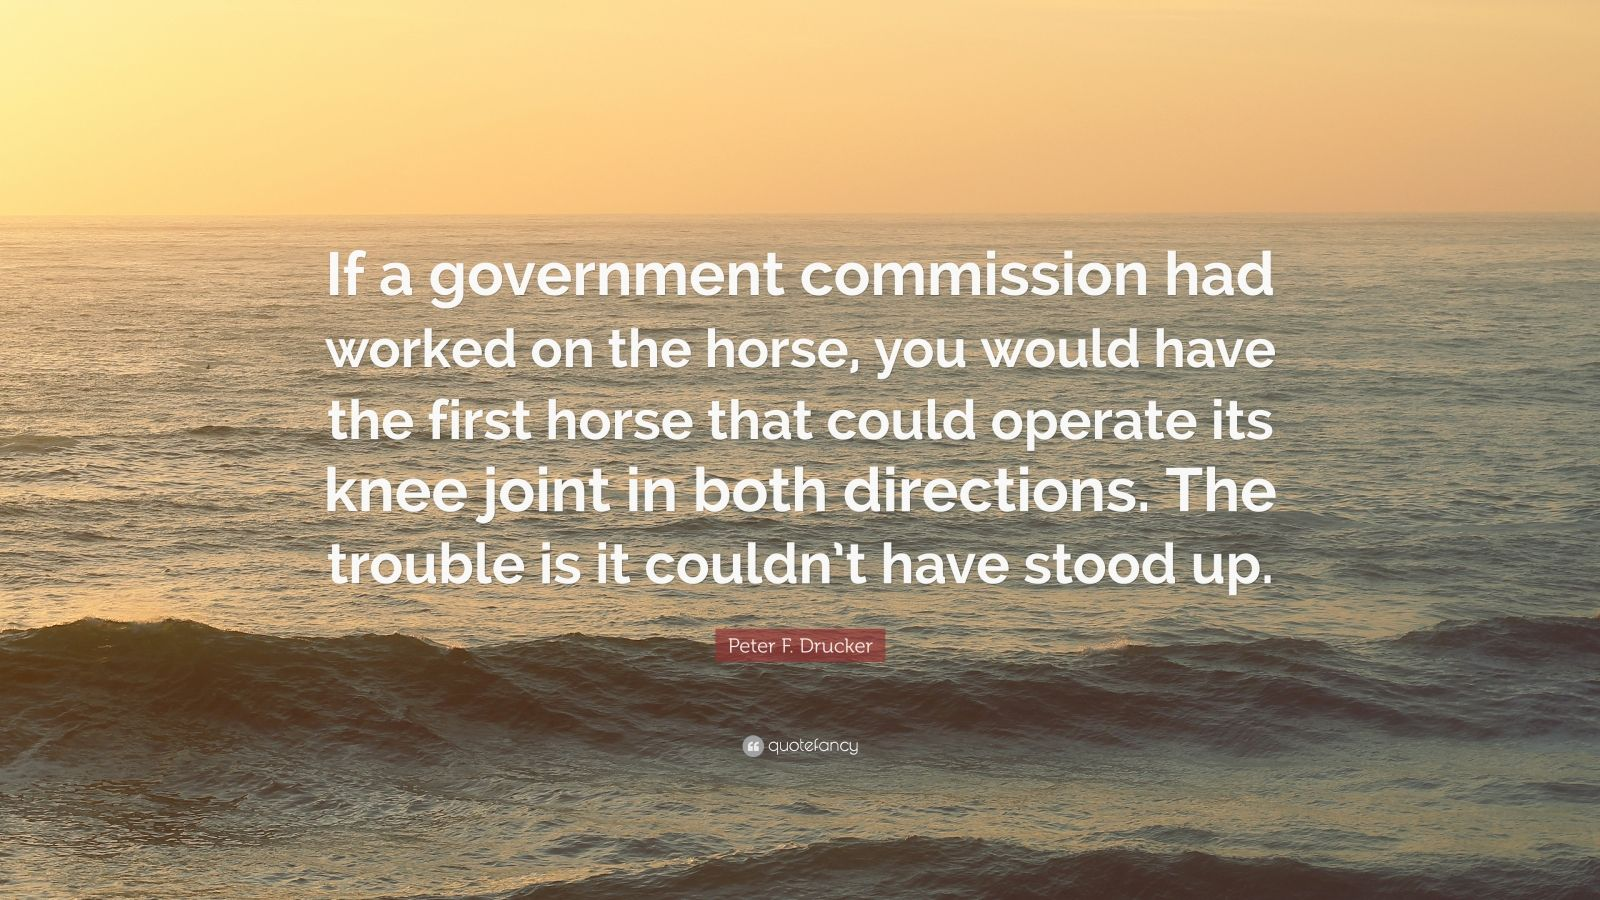 """Peter F. Drucker Quote: """"If a government commission had worked on the horse, you would have the first horse that could operate its knee joint in both directions. The trouble is it couldn't have stood up."""""""